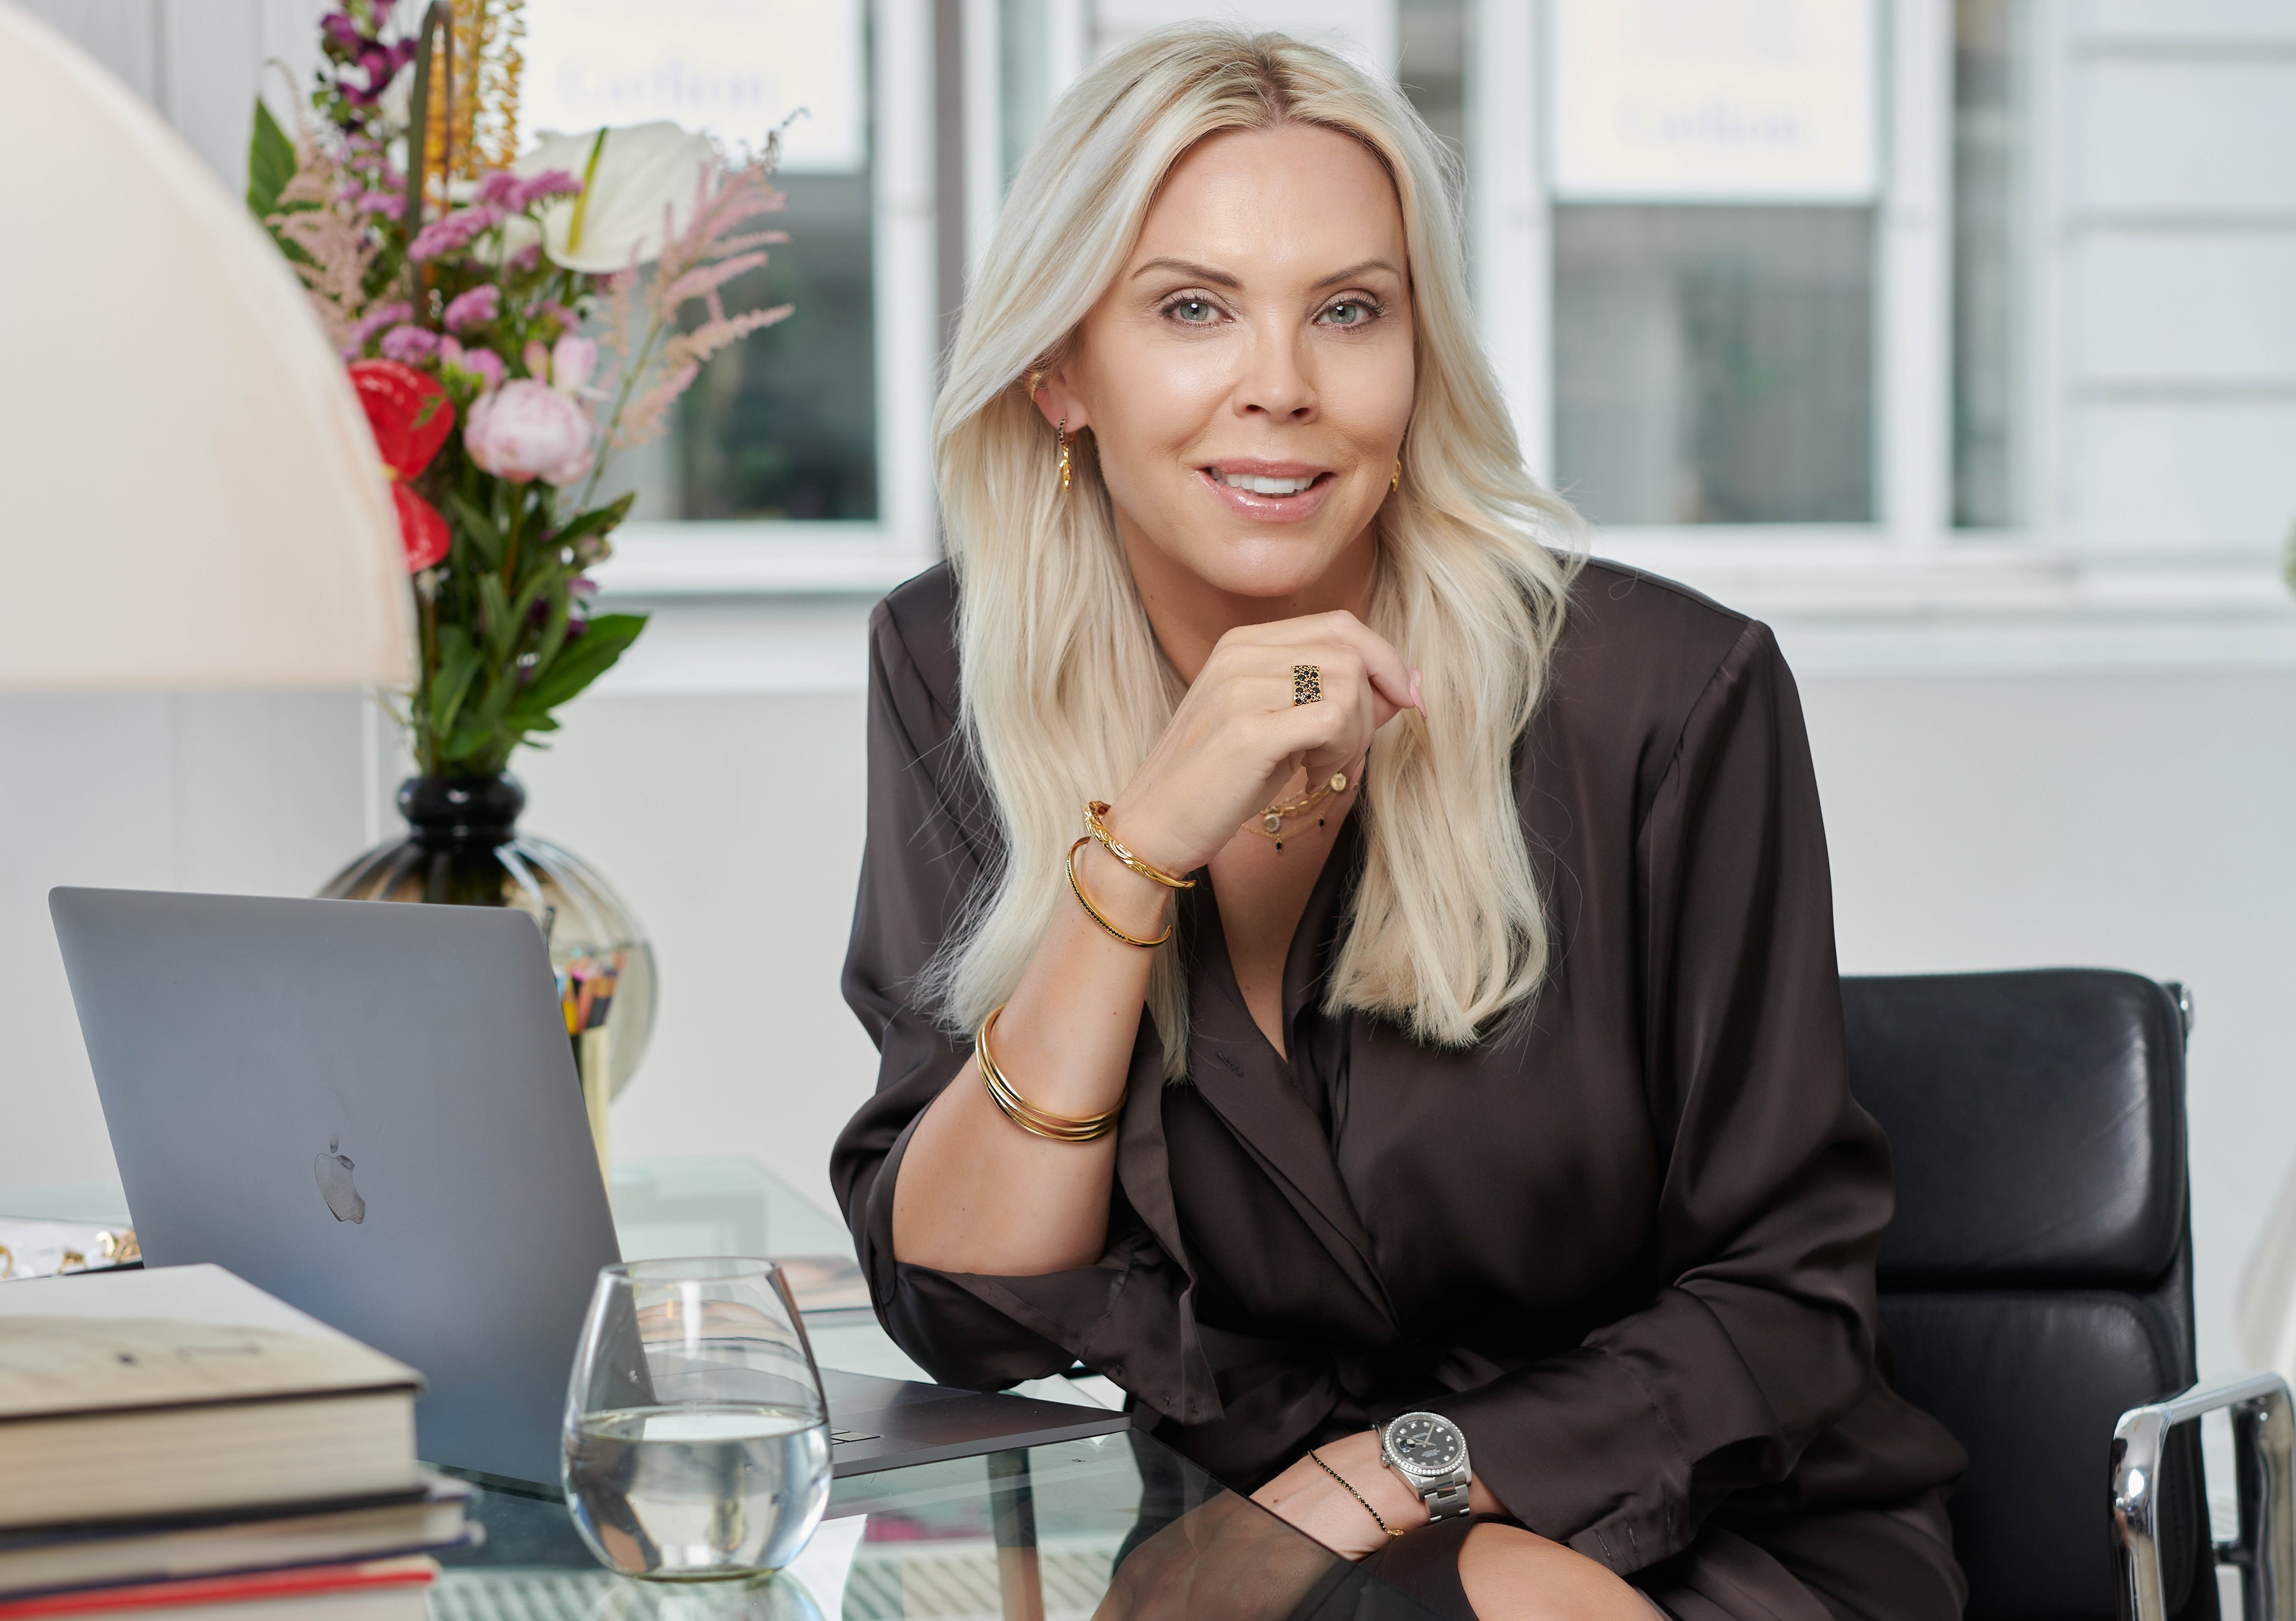 The woman behind Sif Jakobs Jewellery